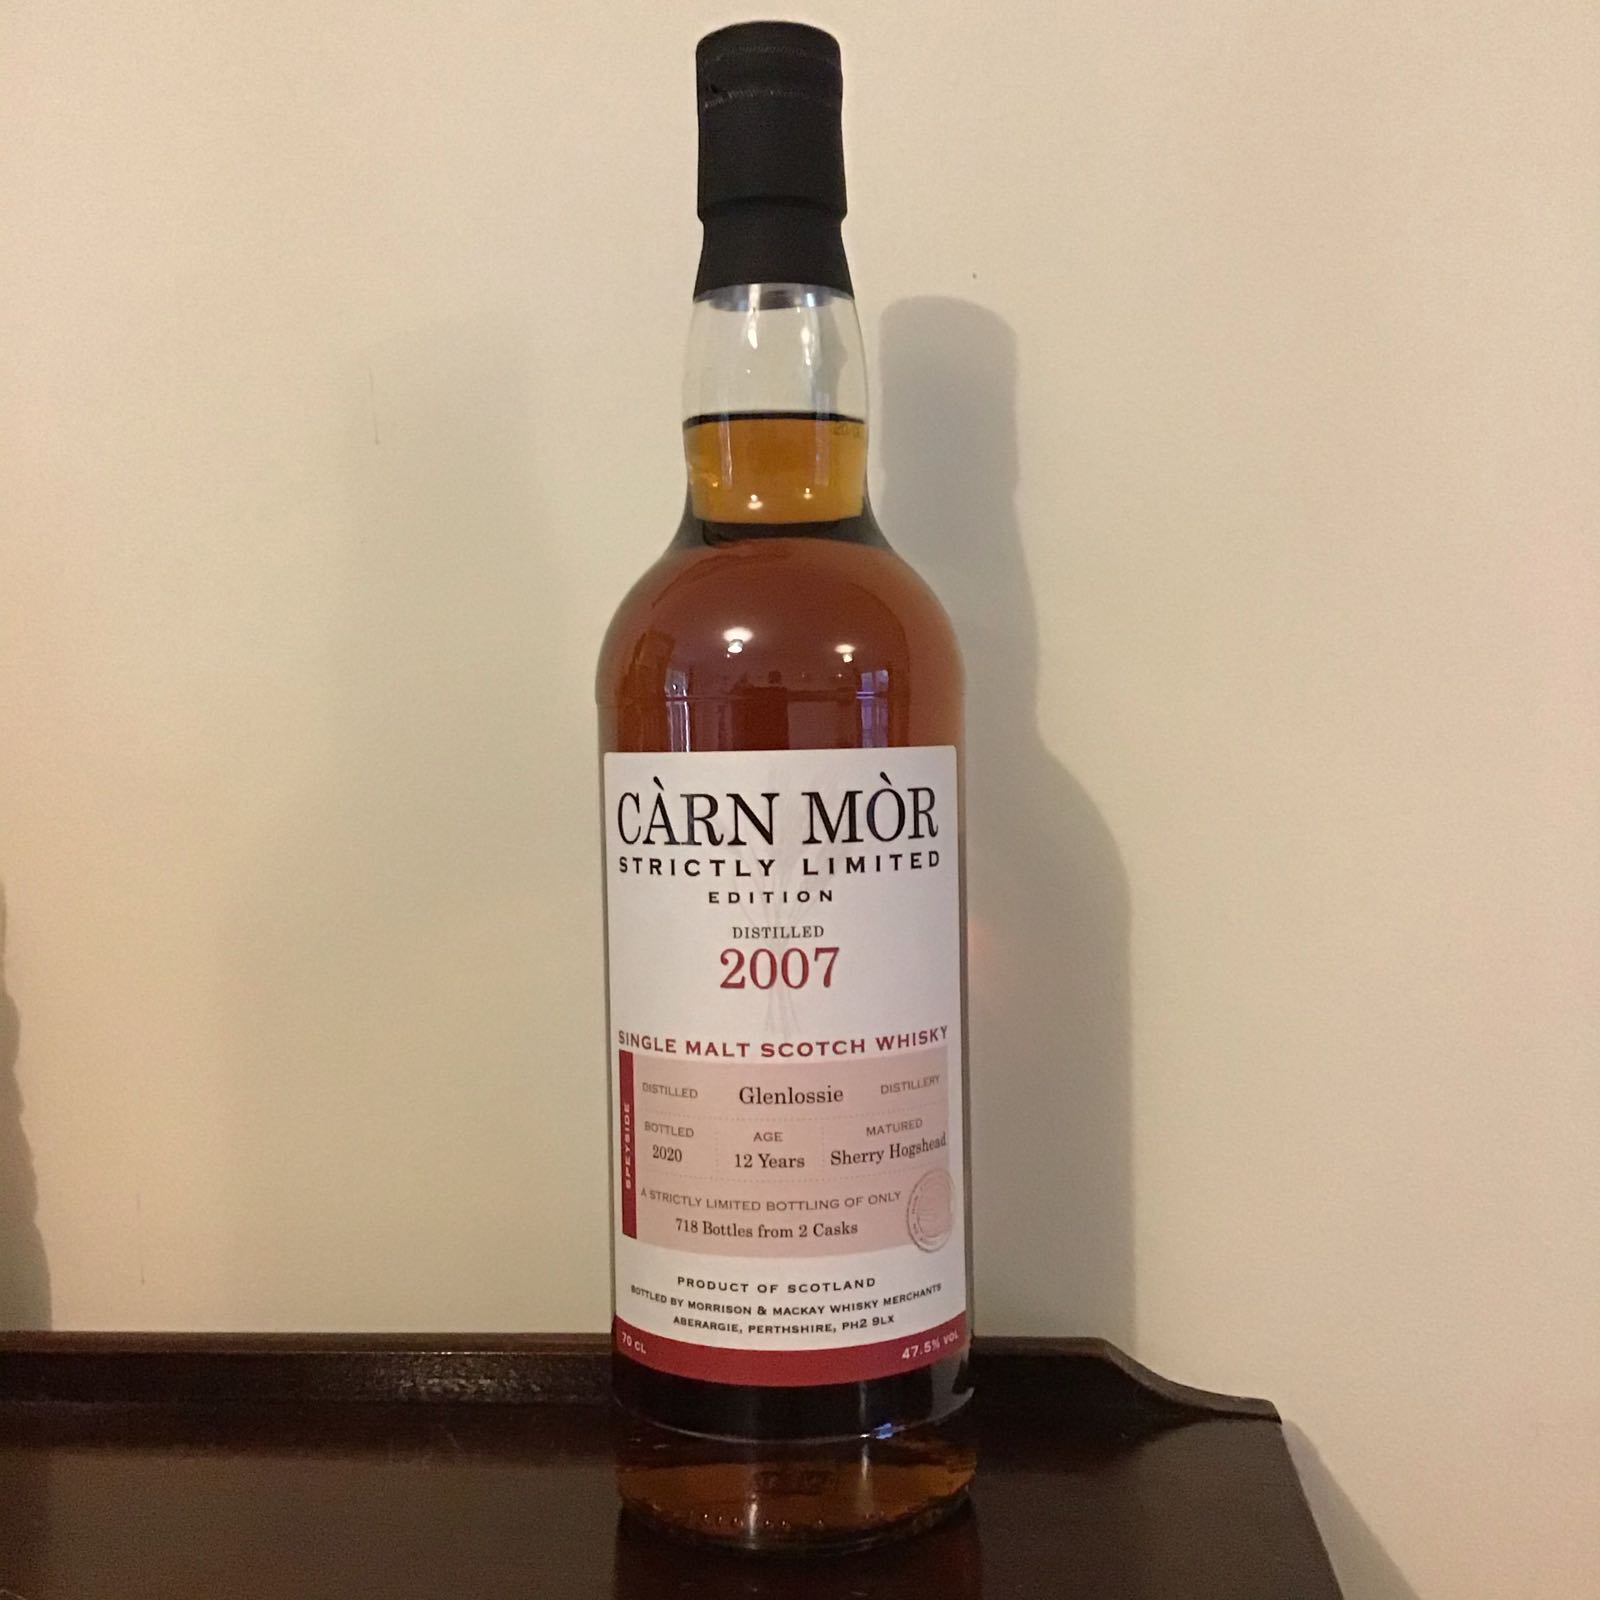 Carn Mor Strictly Limited; Glenlossie 2007 (12 yr old)